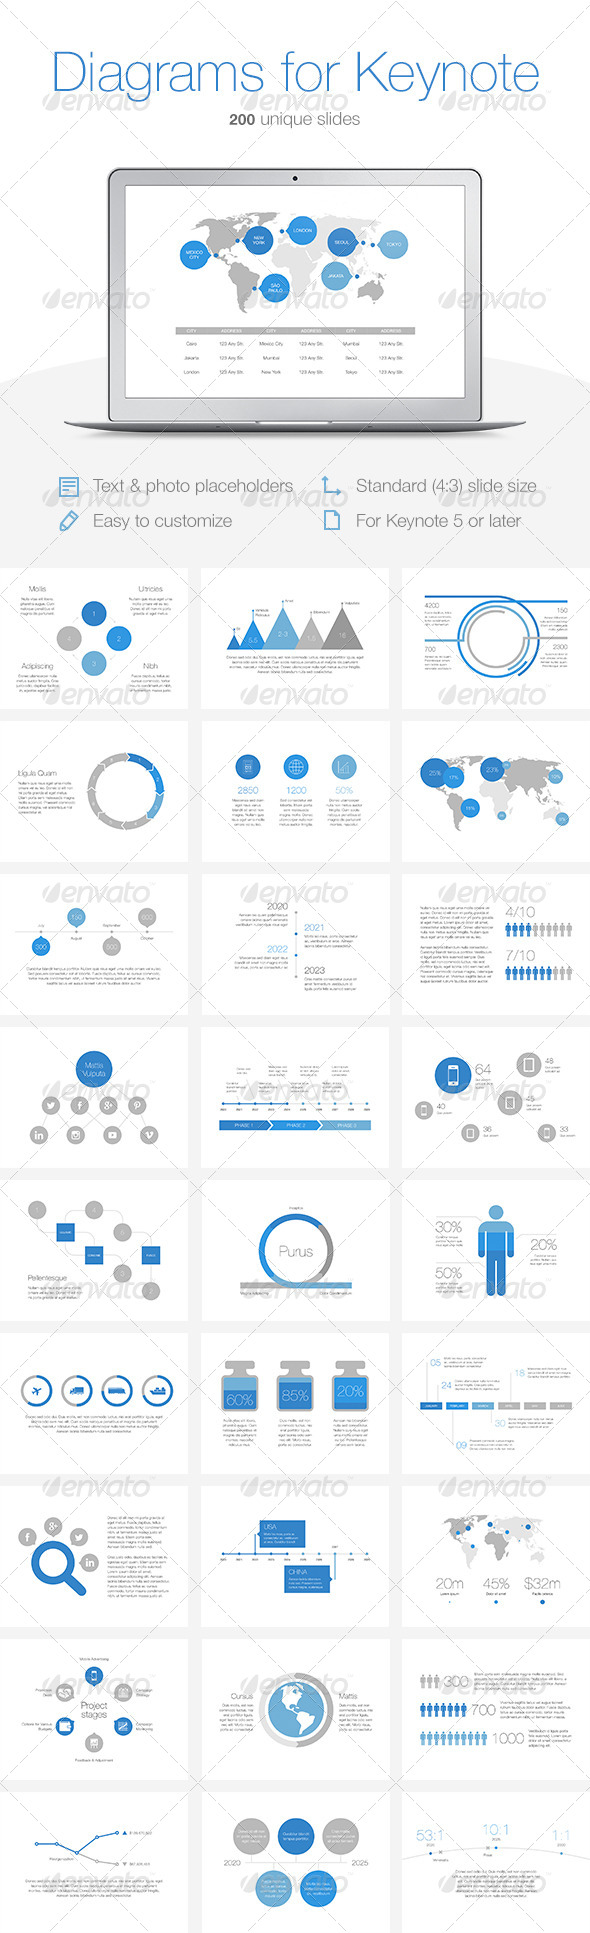 GraphicRiver Diagrams for Keynote 7819805